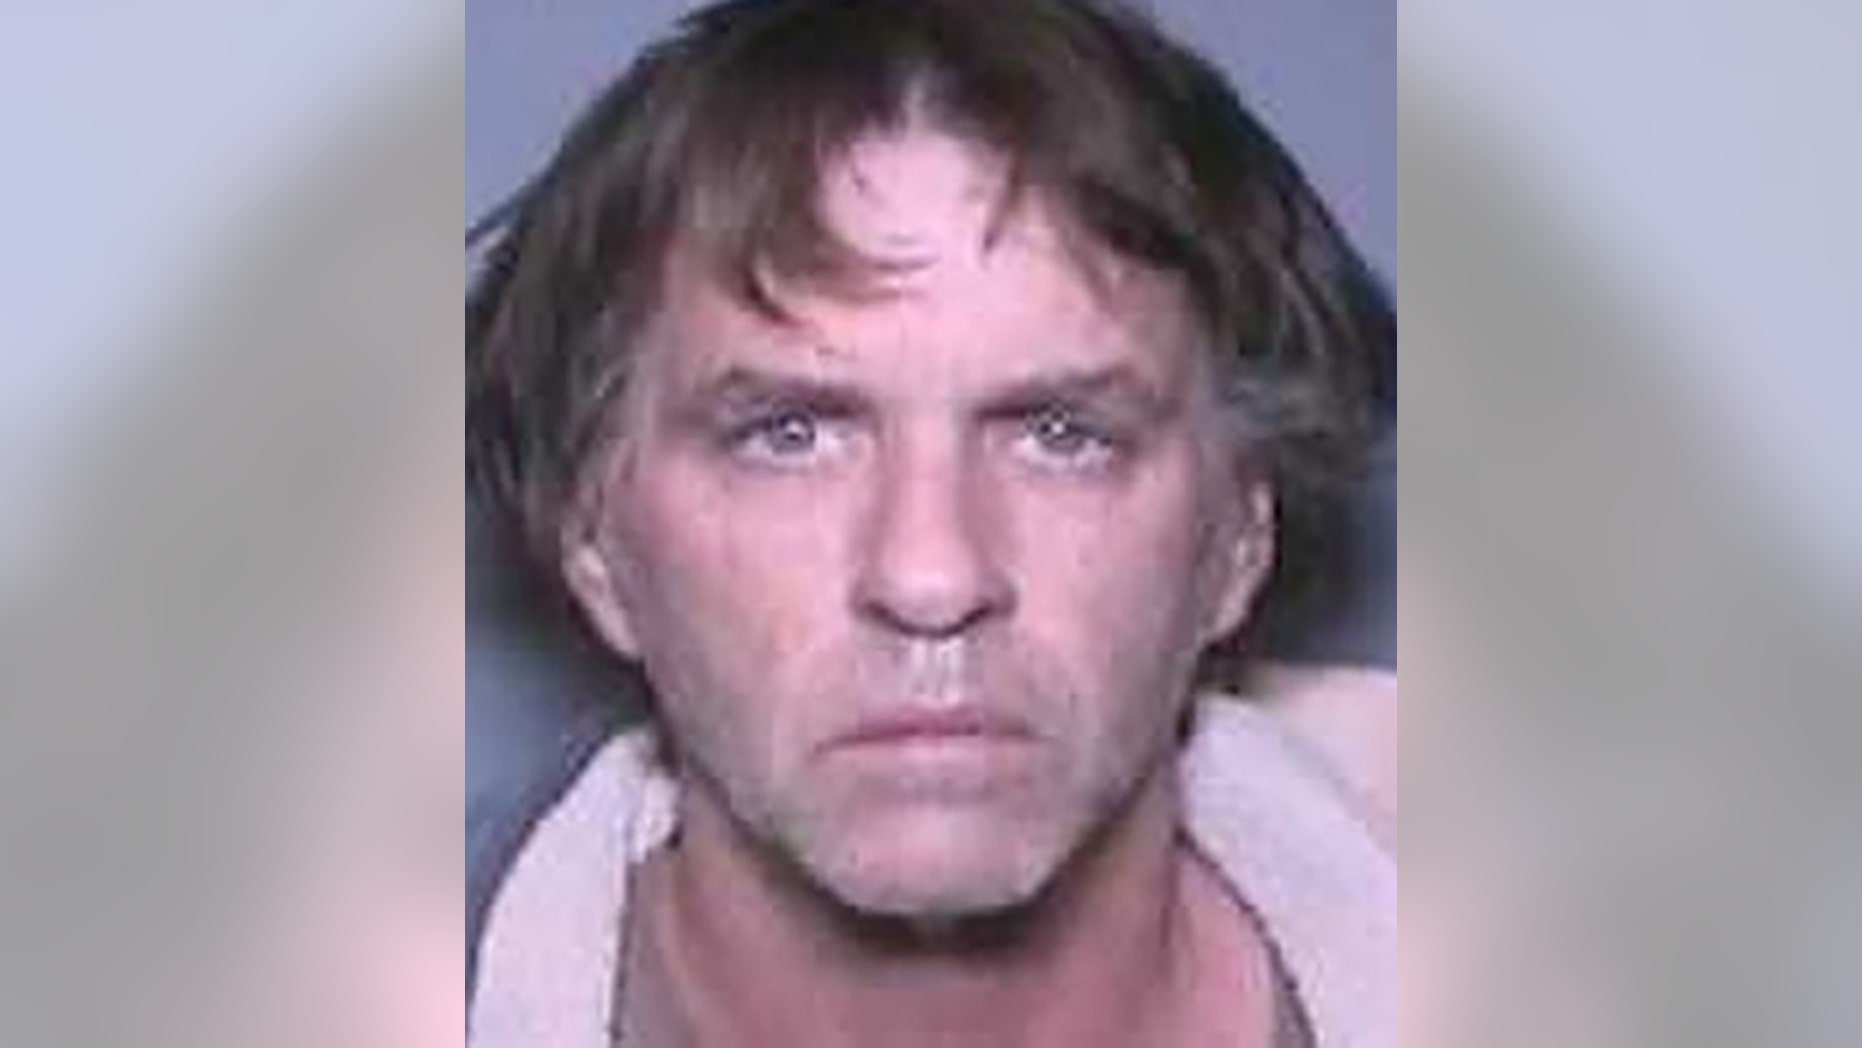 Kevin Konther was arrested in connection to multiple rapes in the 1990s.